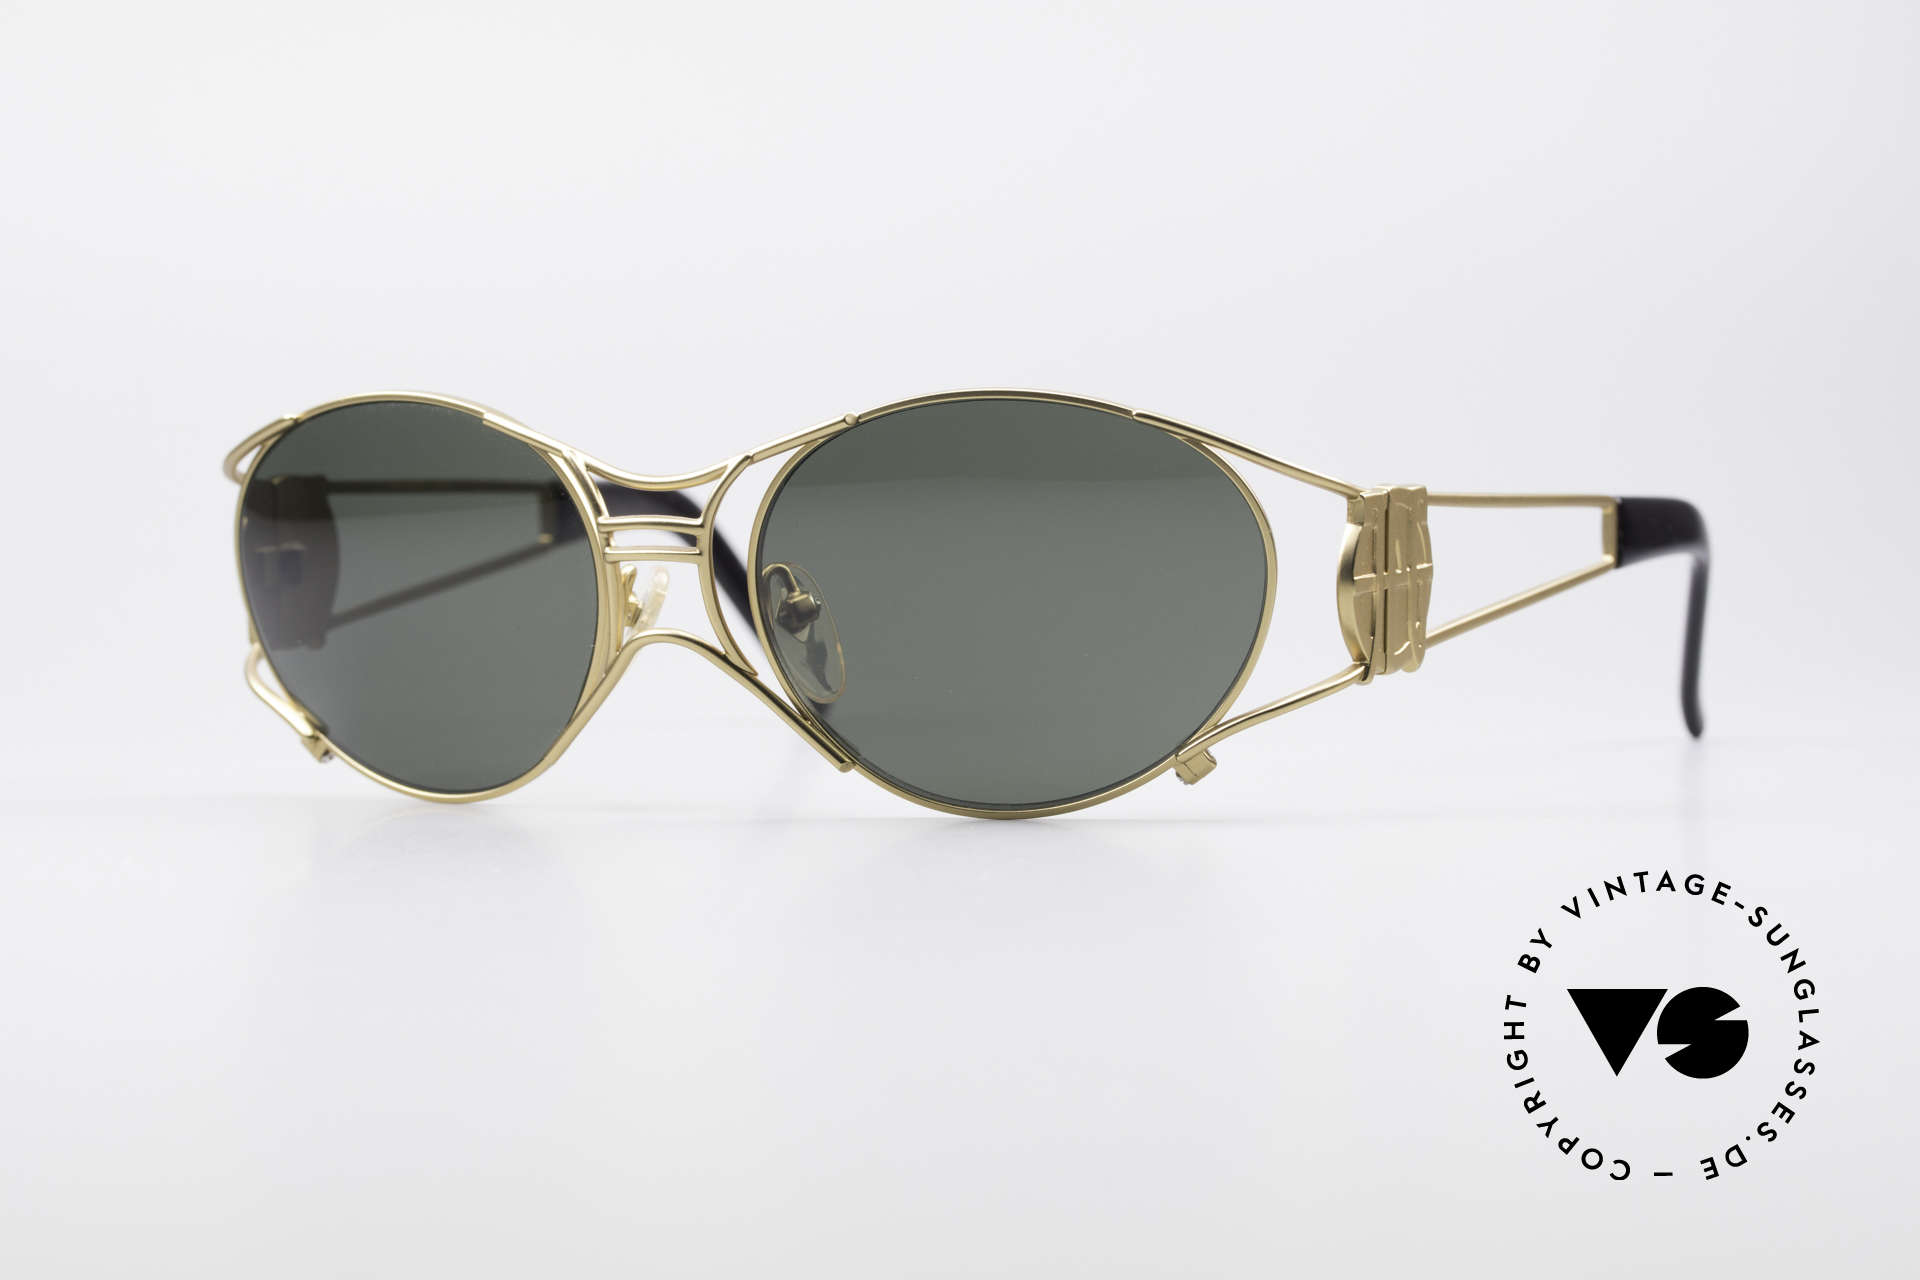 Jean Paul Gaultier 58-6101 90's Steampunk Sunglasses, rare 90's designer sunglasses by Jean Paul GAULTIER, Made for Men and Women